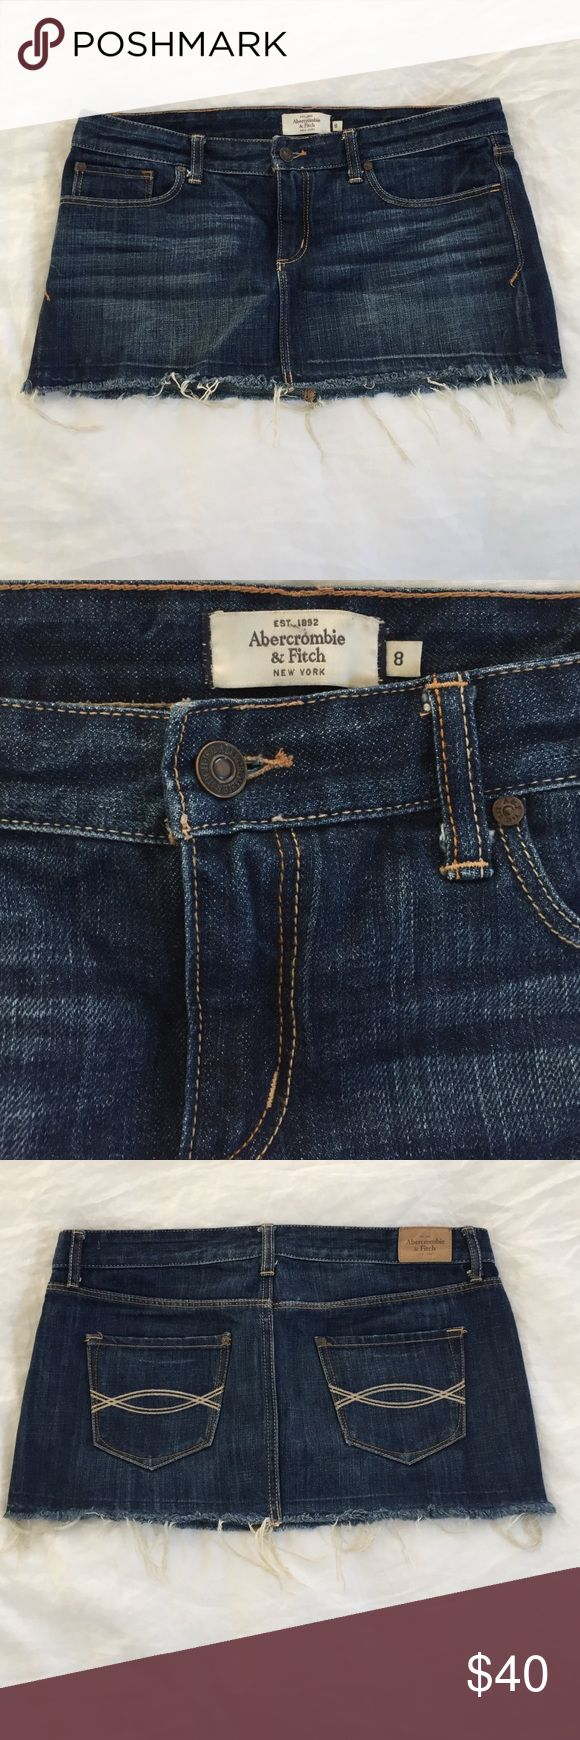 Abercrombie & Fitch jean skirt Abercrombie & Fitch denim skirt - lightly worn Abercrombie & Fitch Skirts Mini